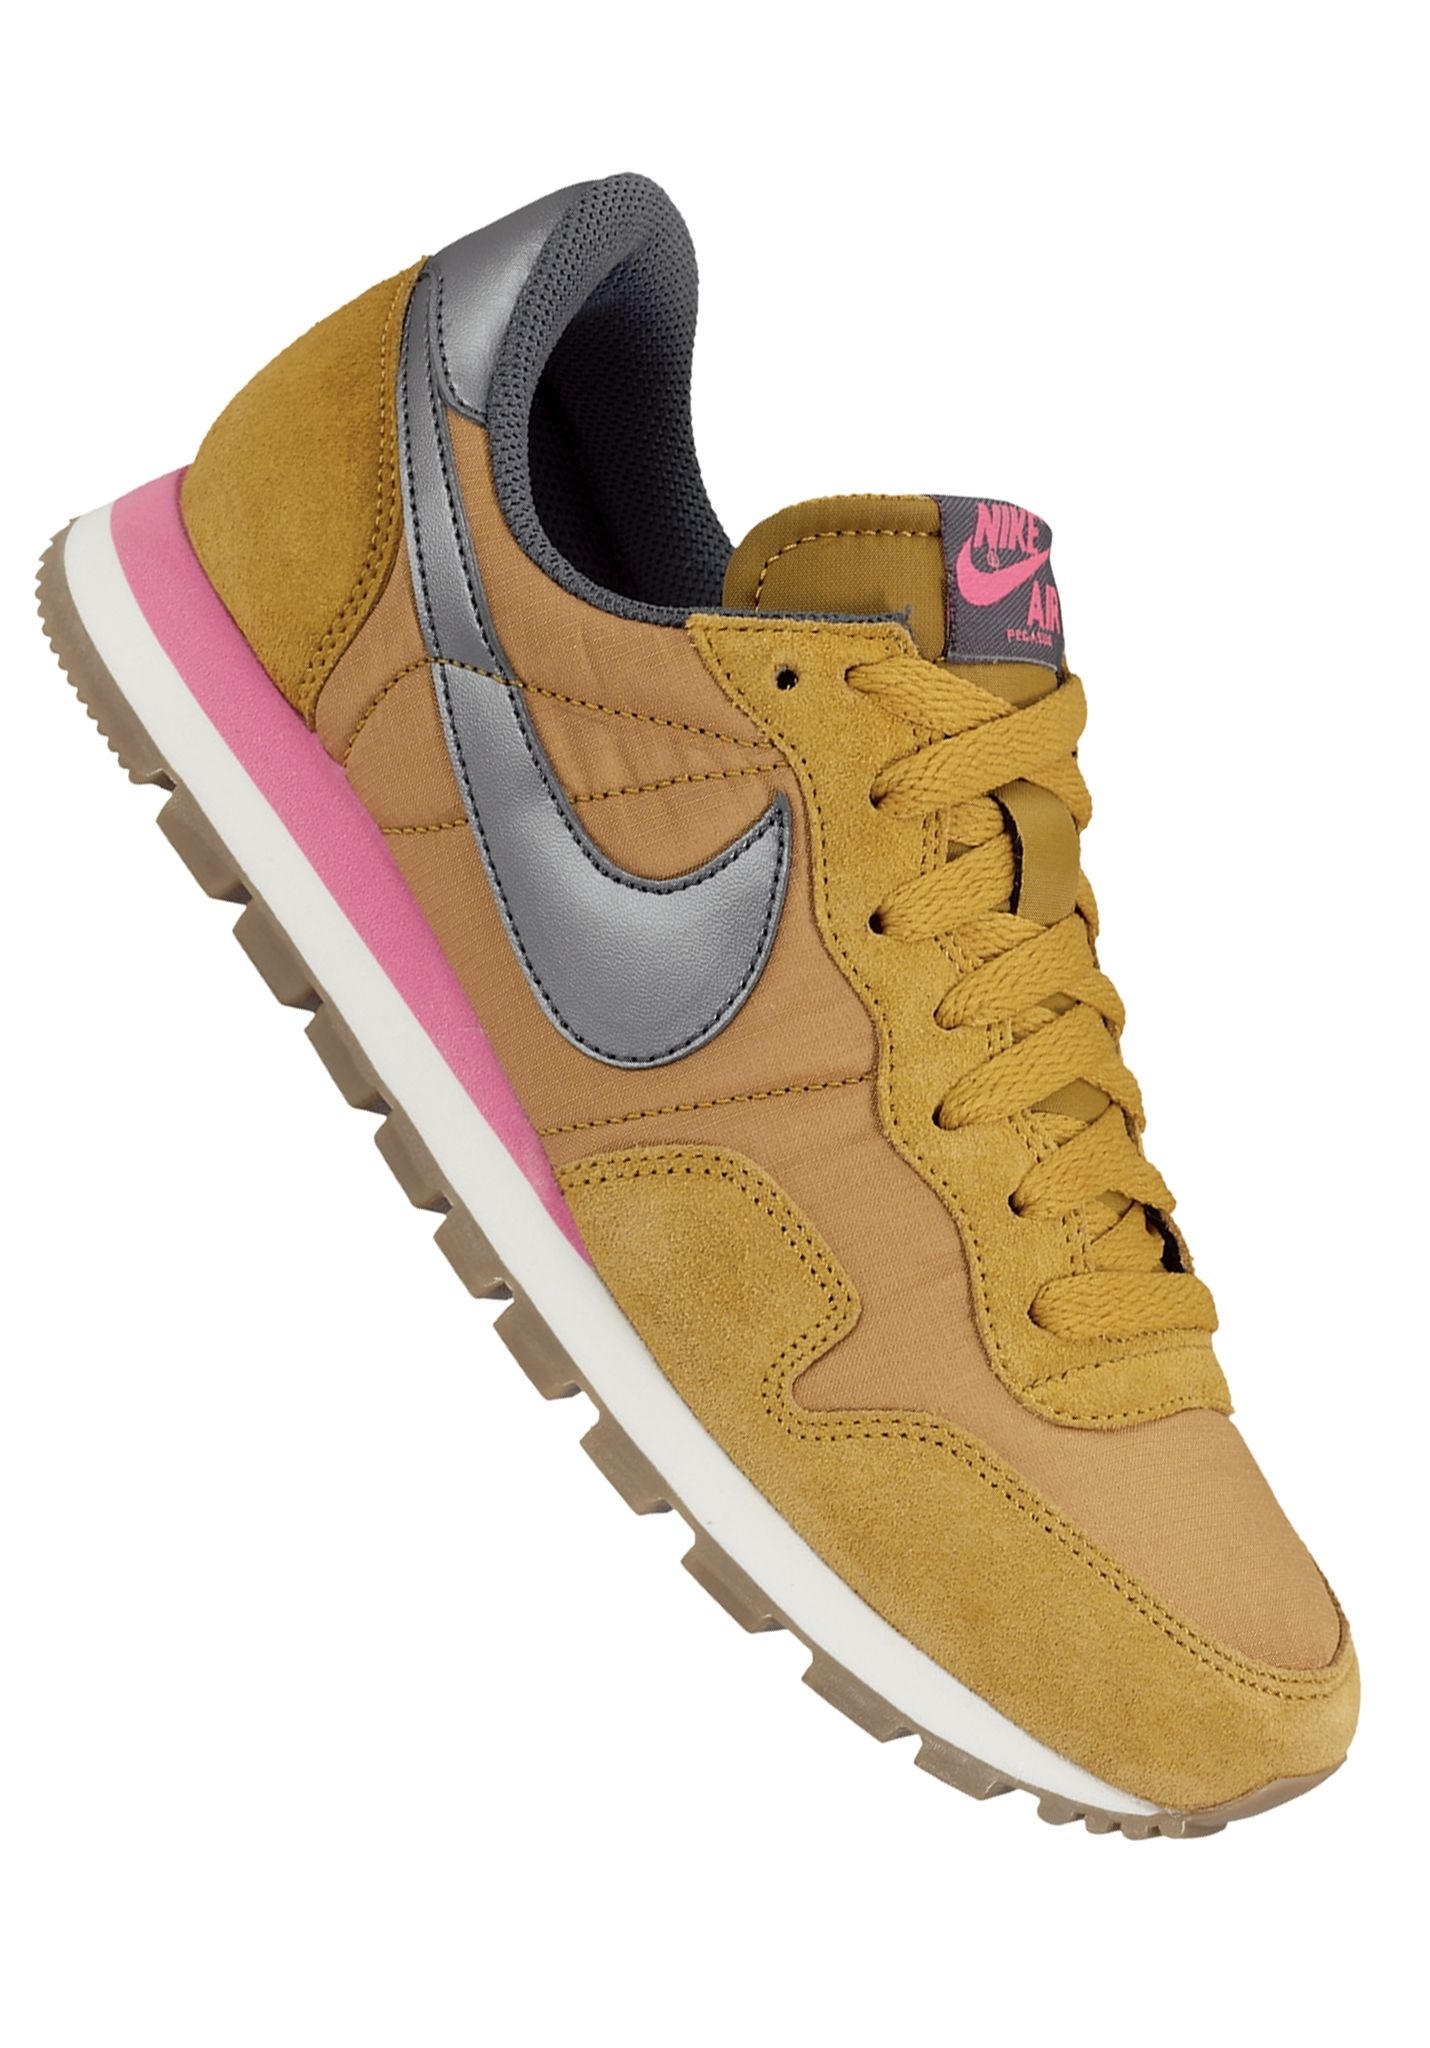 55c361f036a492 NIKE SPORTSWEAR Air Pegasus 83 - Sneakers for Women - Brown - Planet Sports